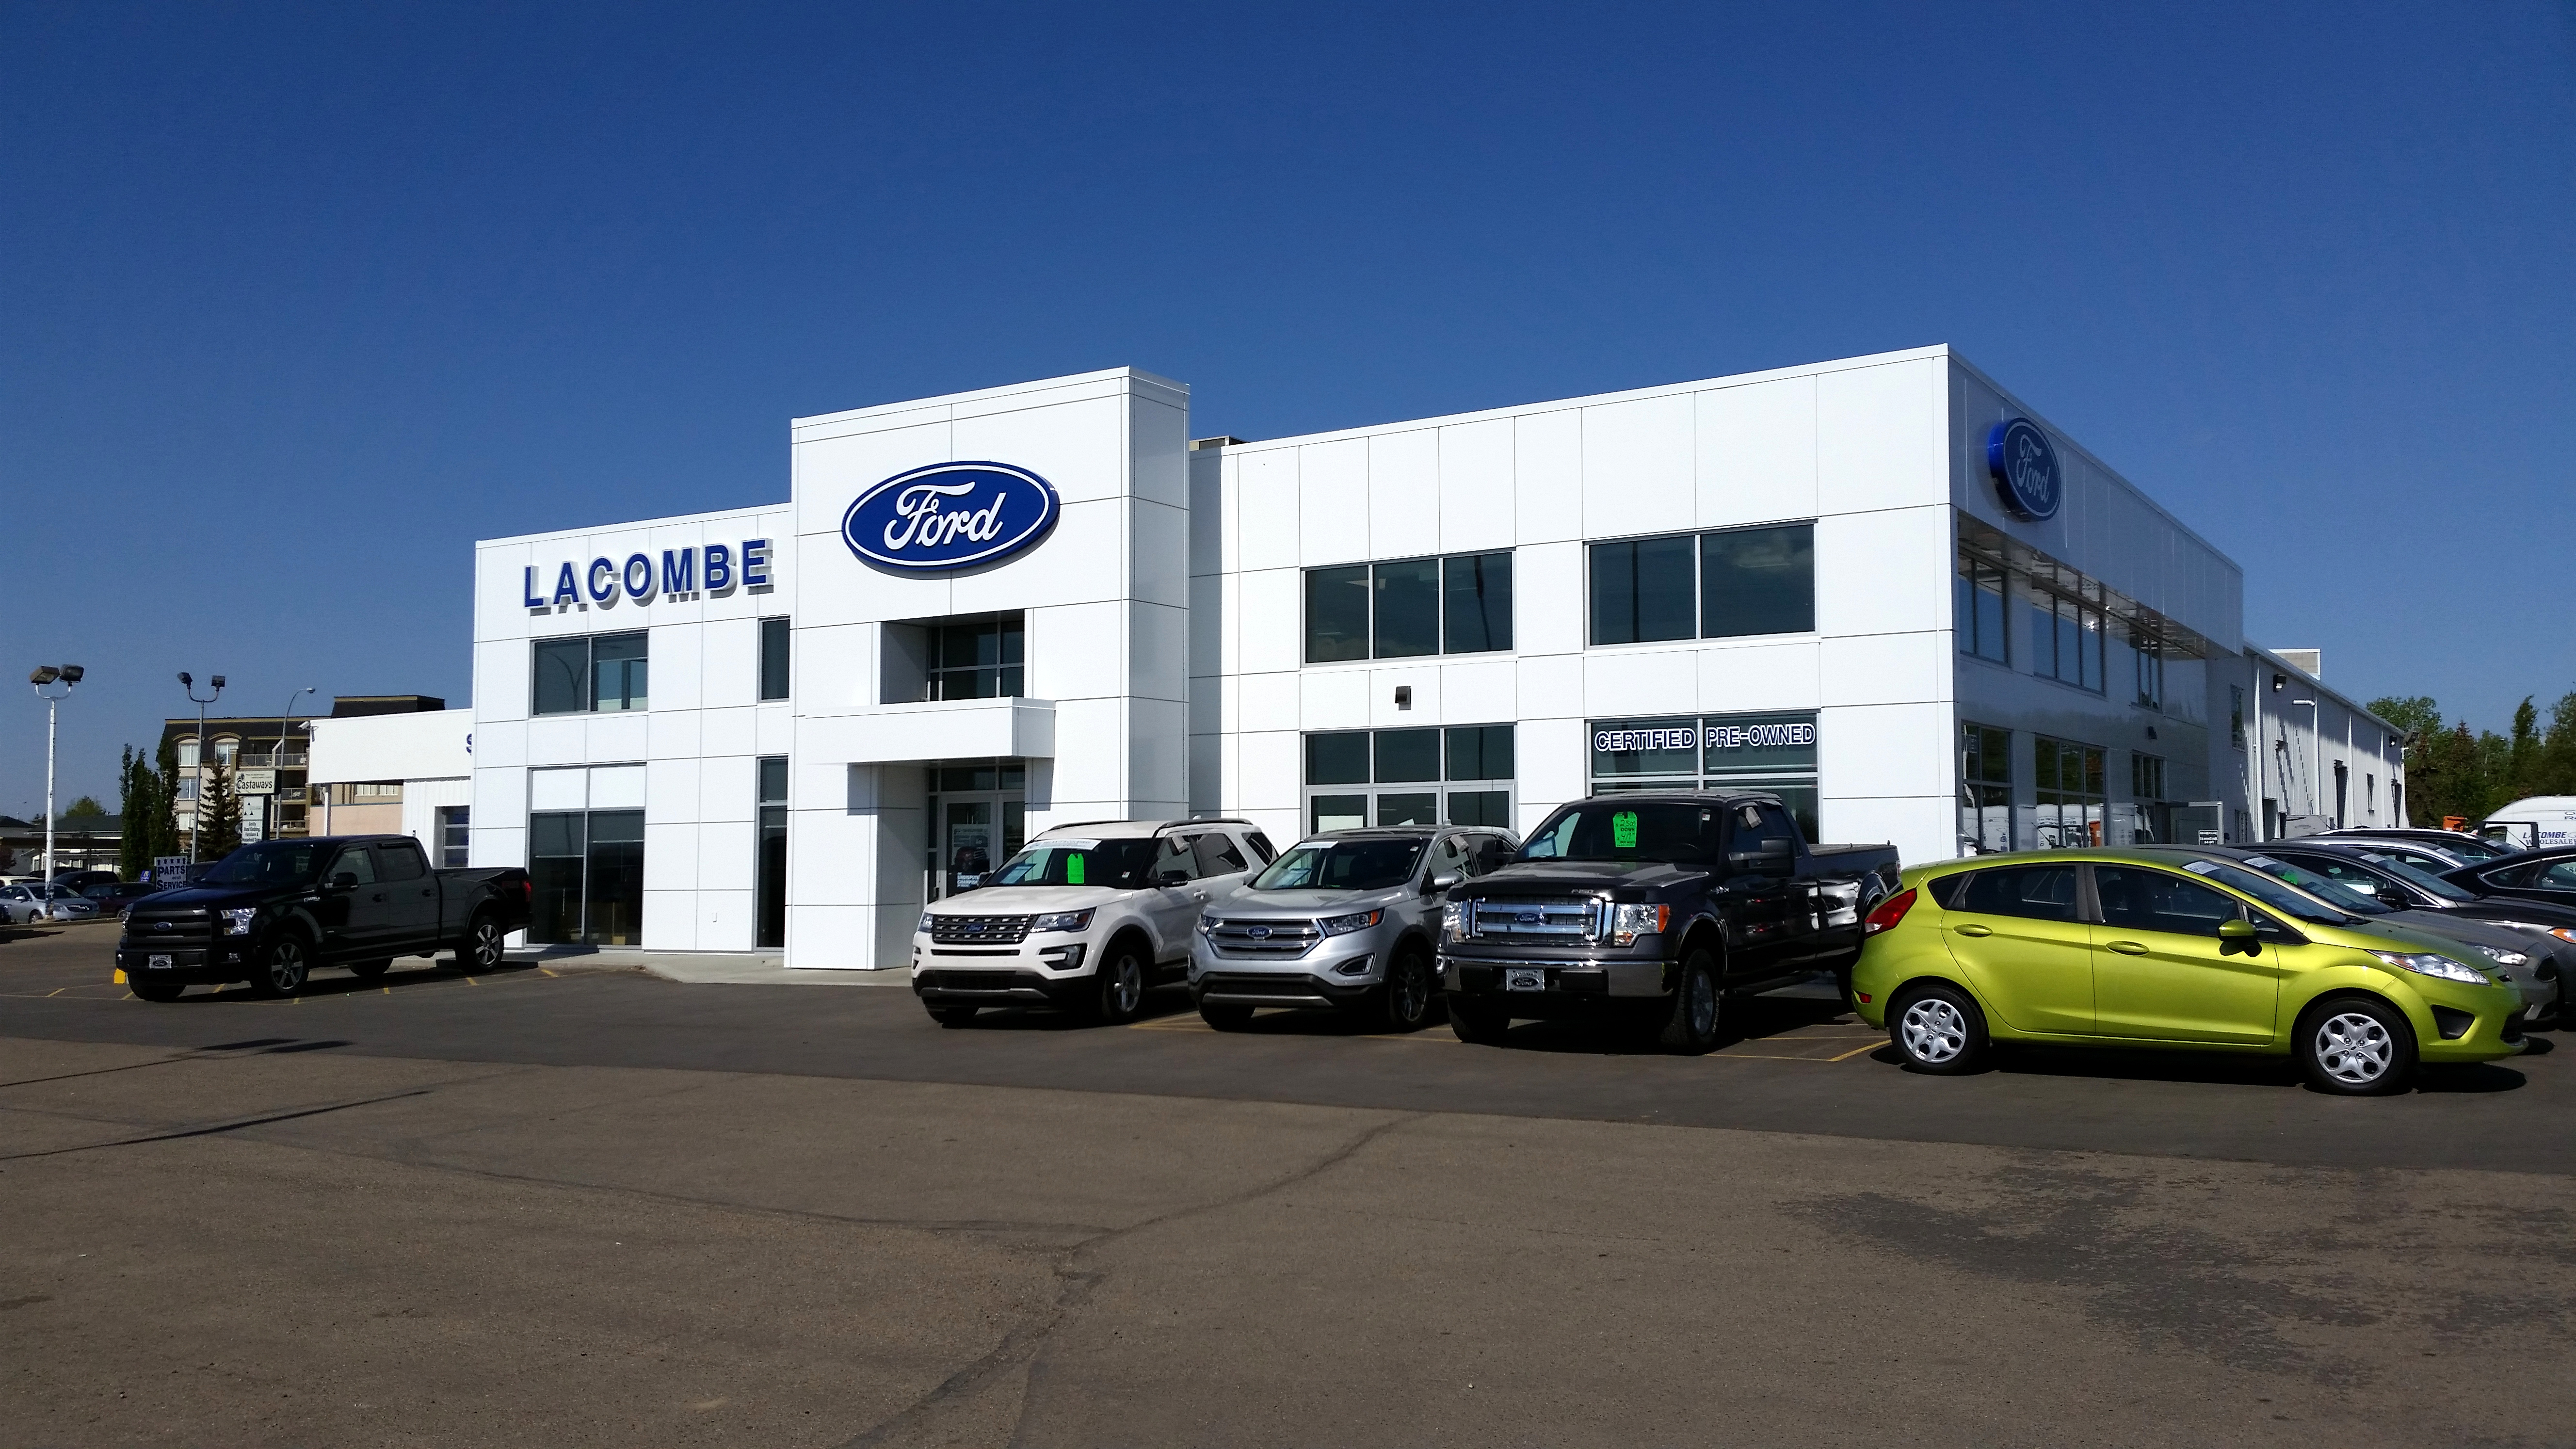 Lacombe Ford Tires4Life